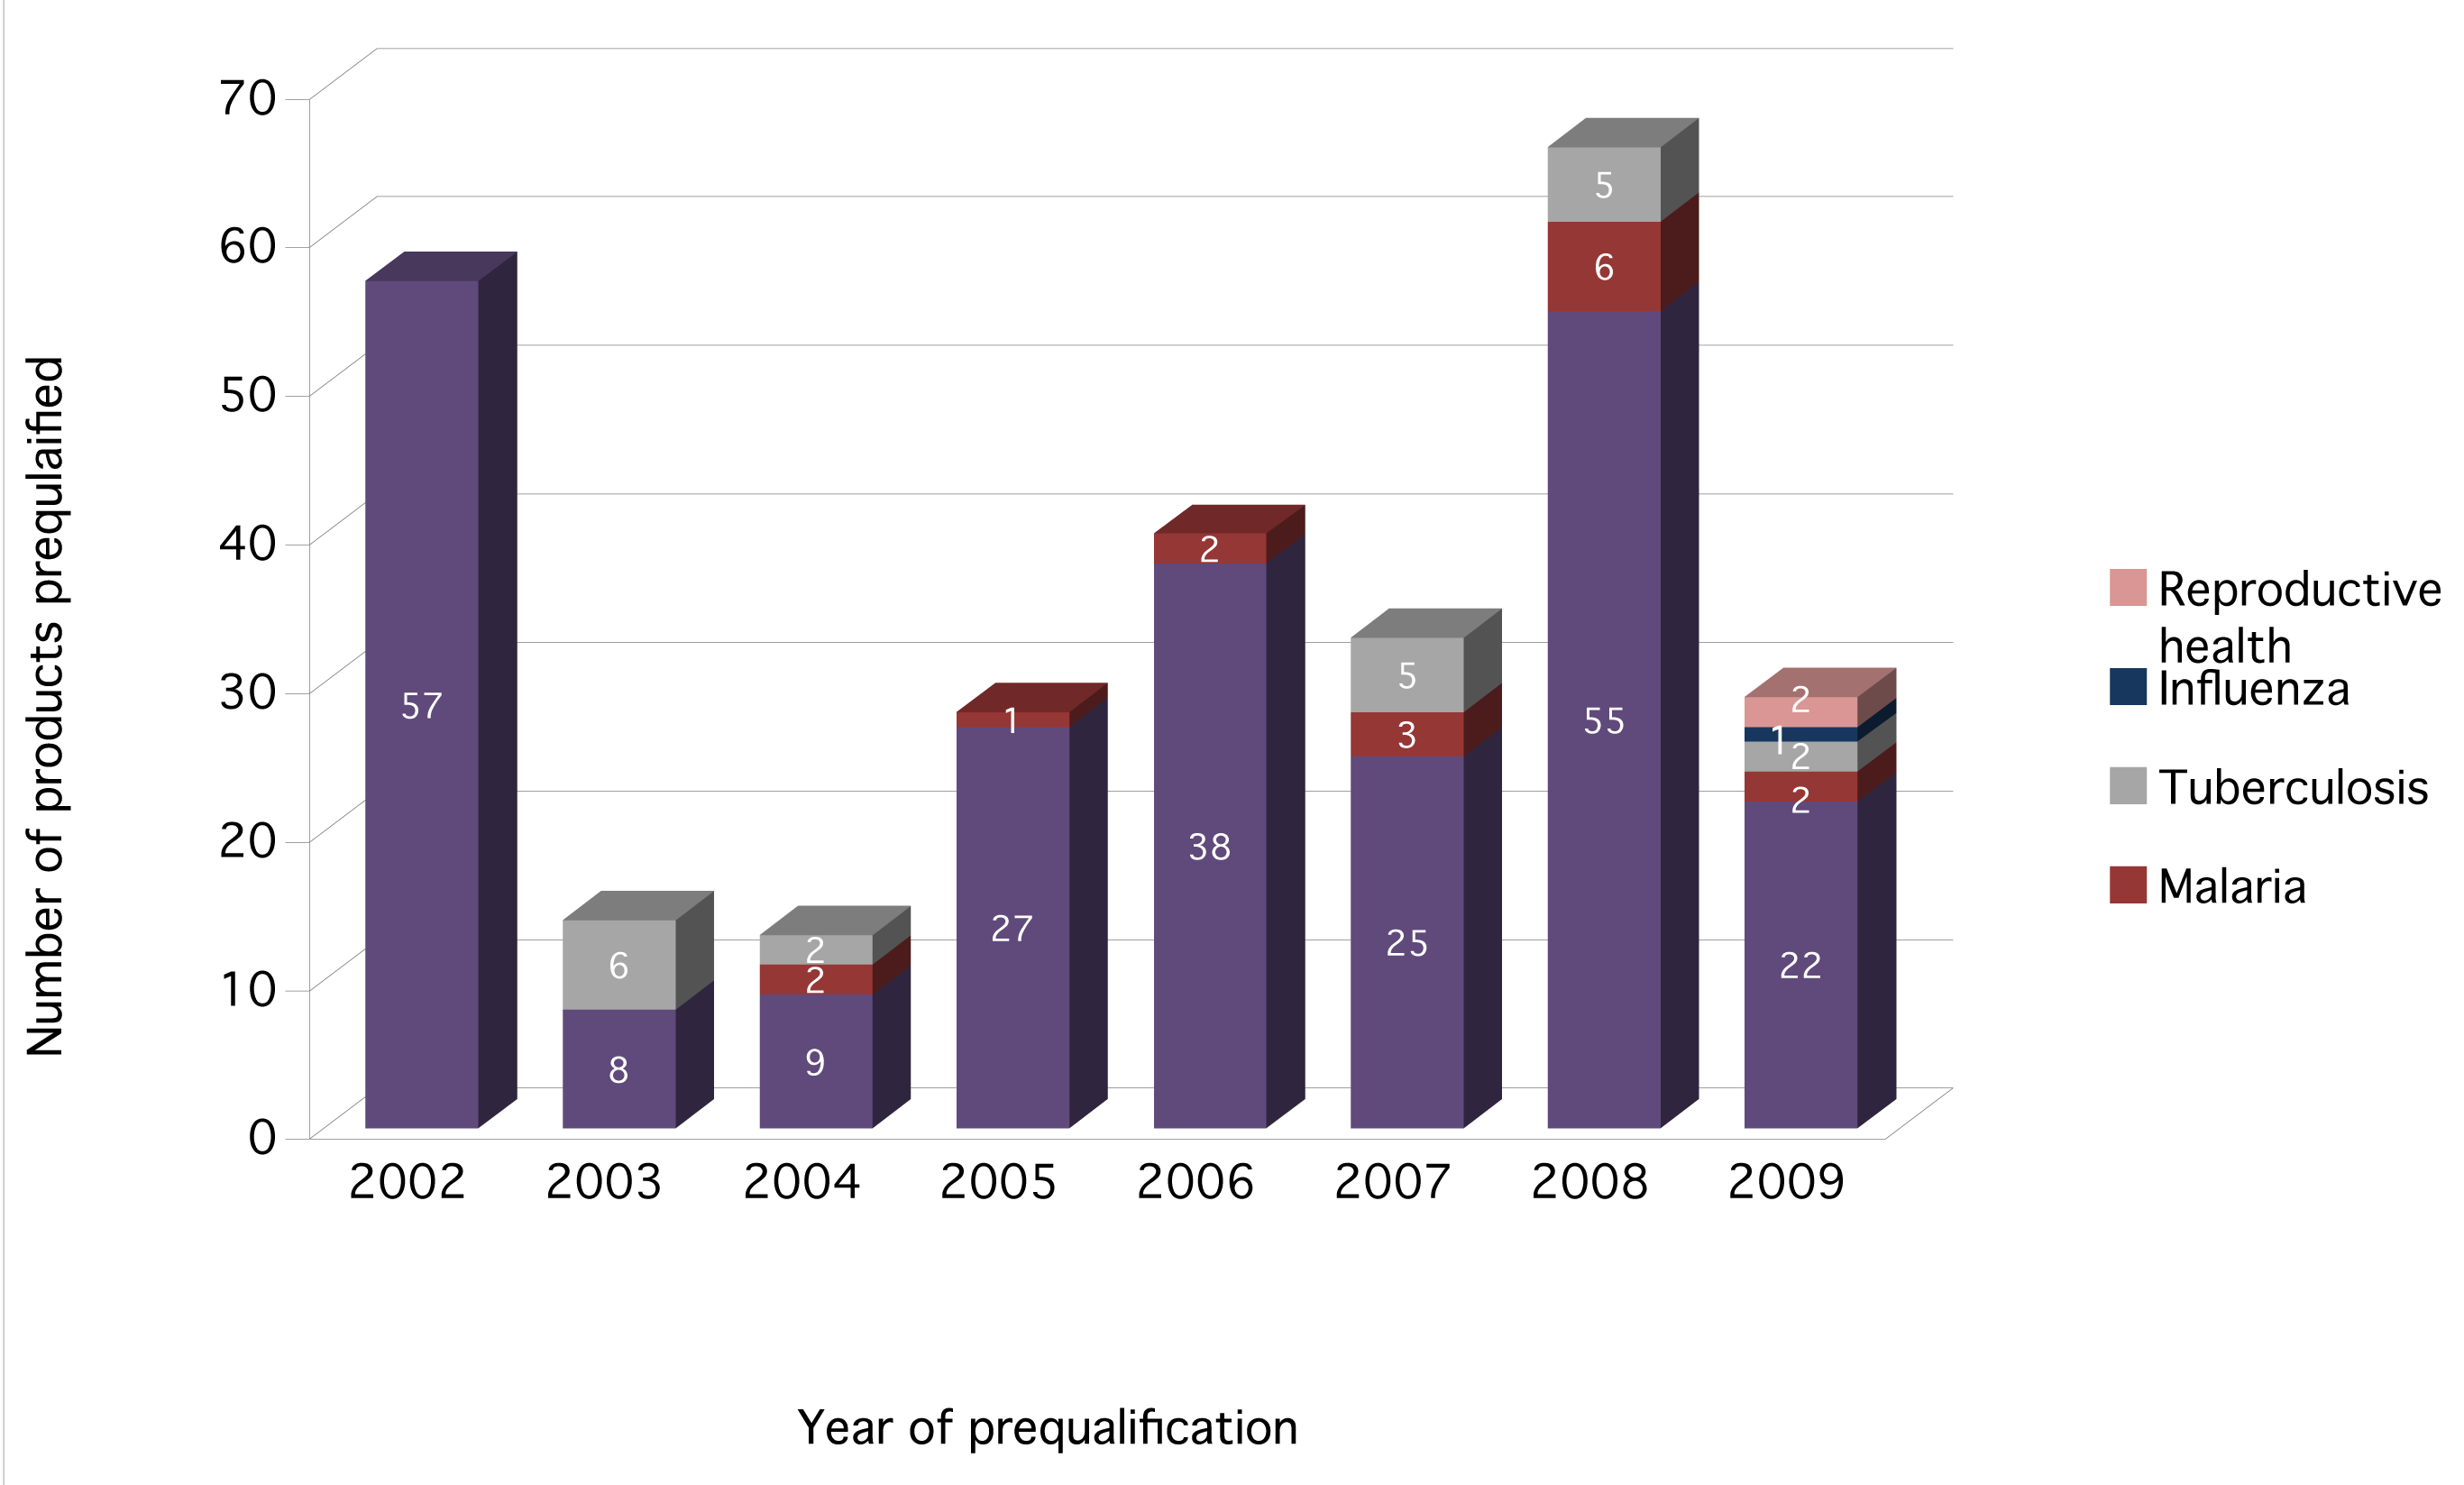 "WHO prequalified drugs by disease <em class=""ref"">[<b>7</b>]</em>."